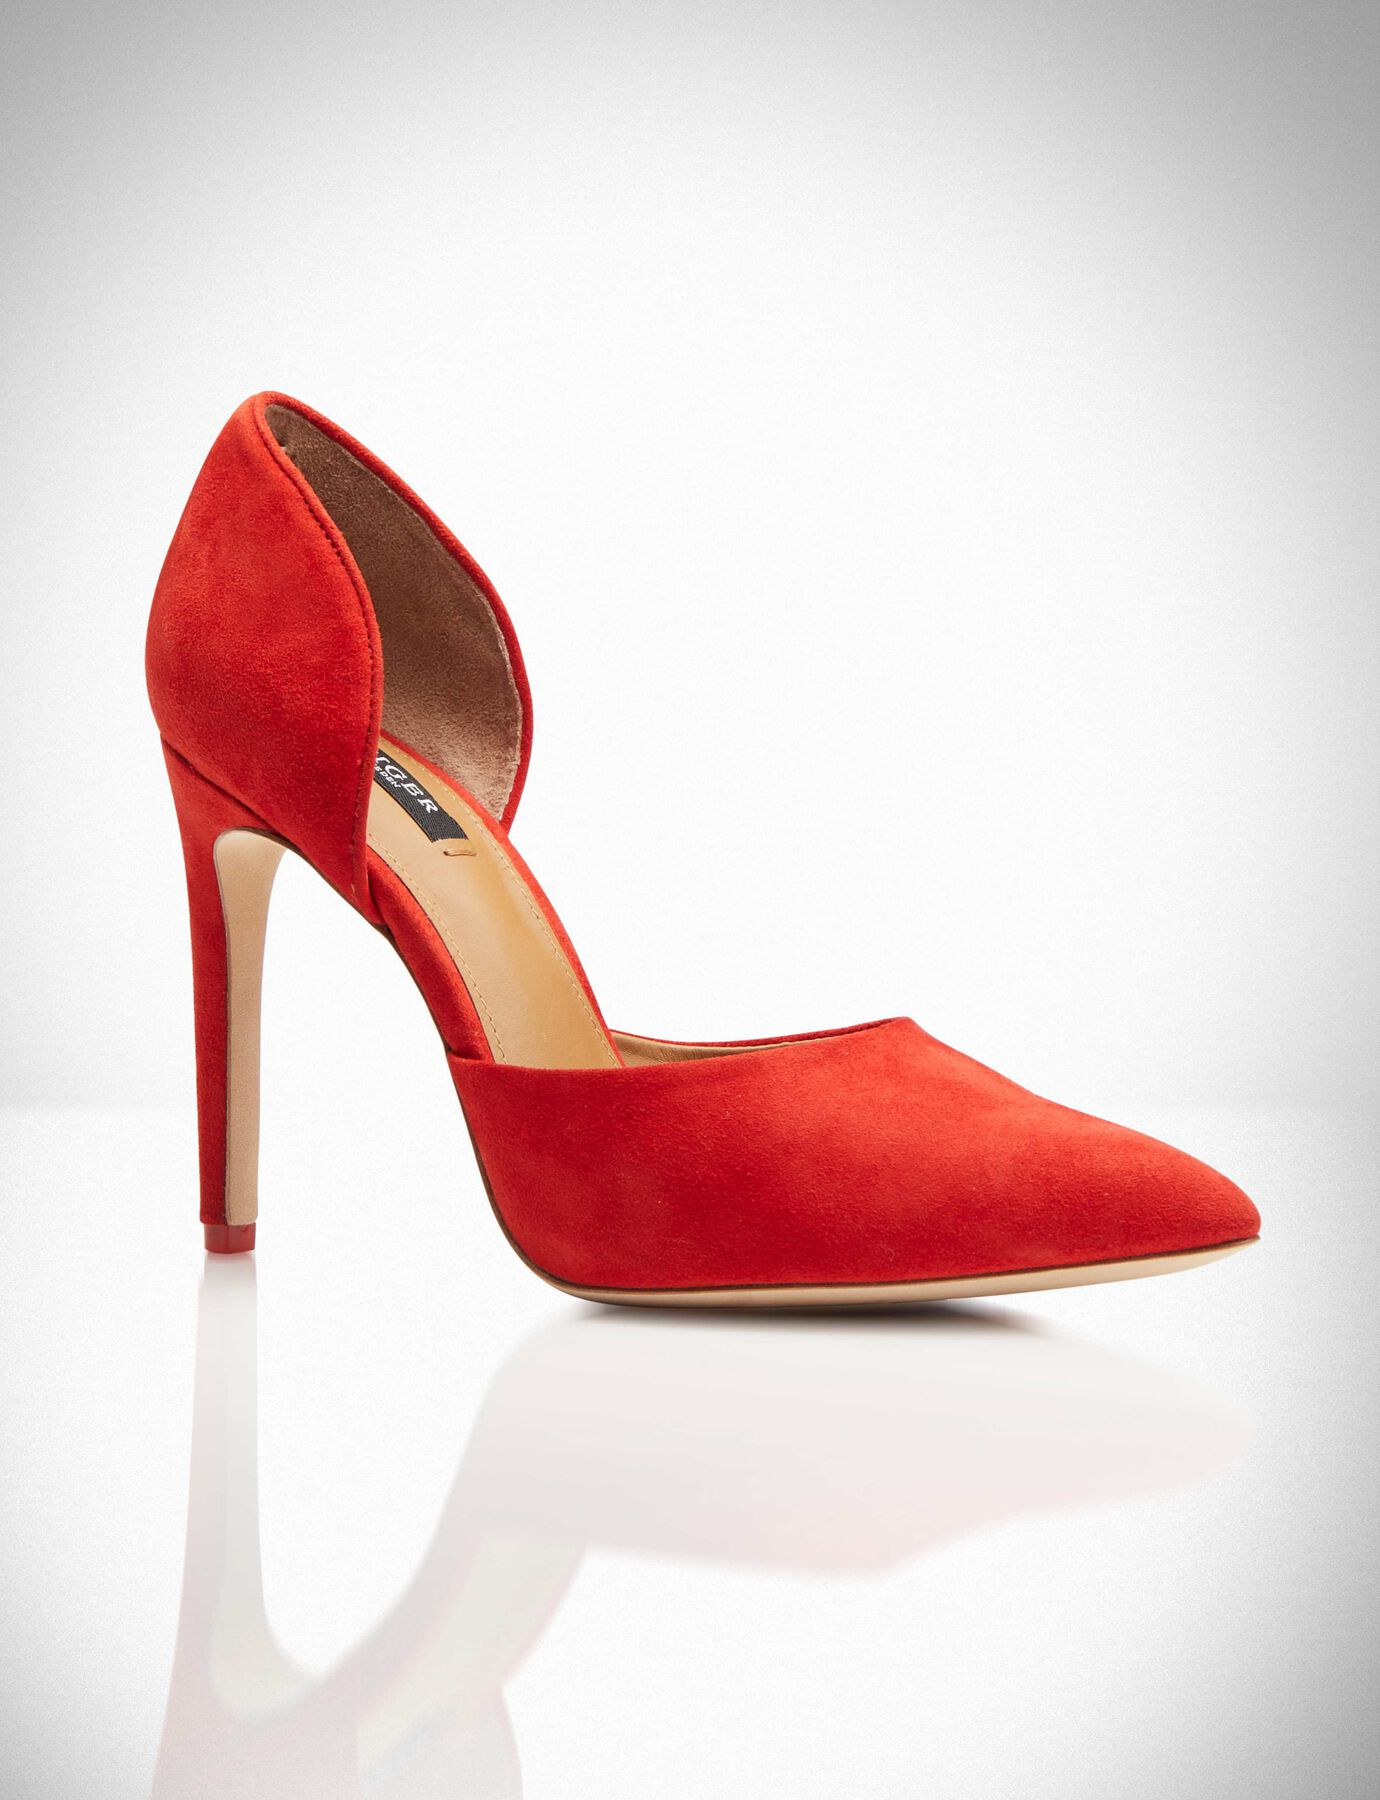 BOROUGH S PUMPS  in Lipstick Red from Tiger of Sweden